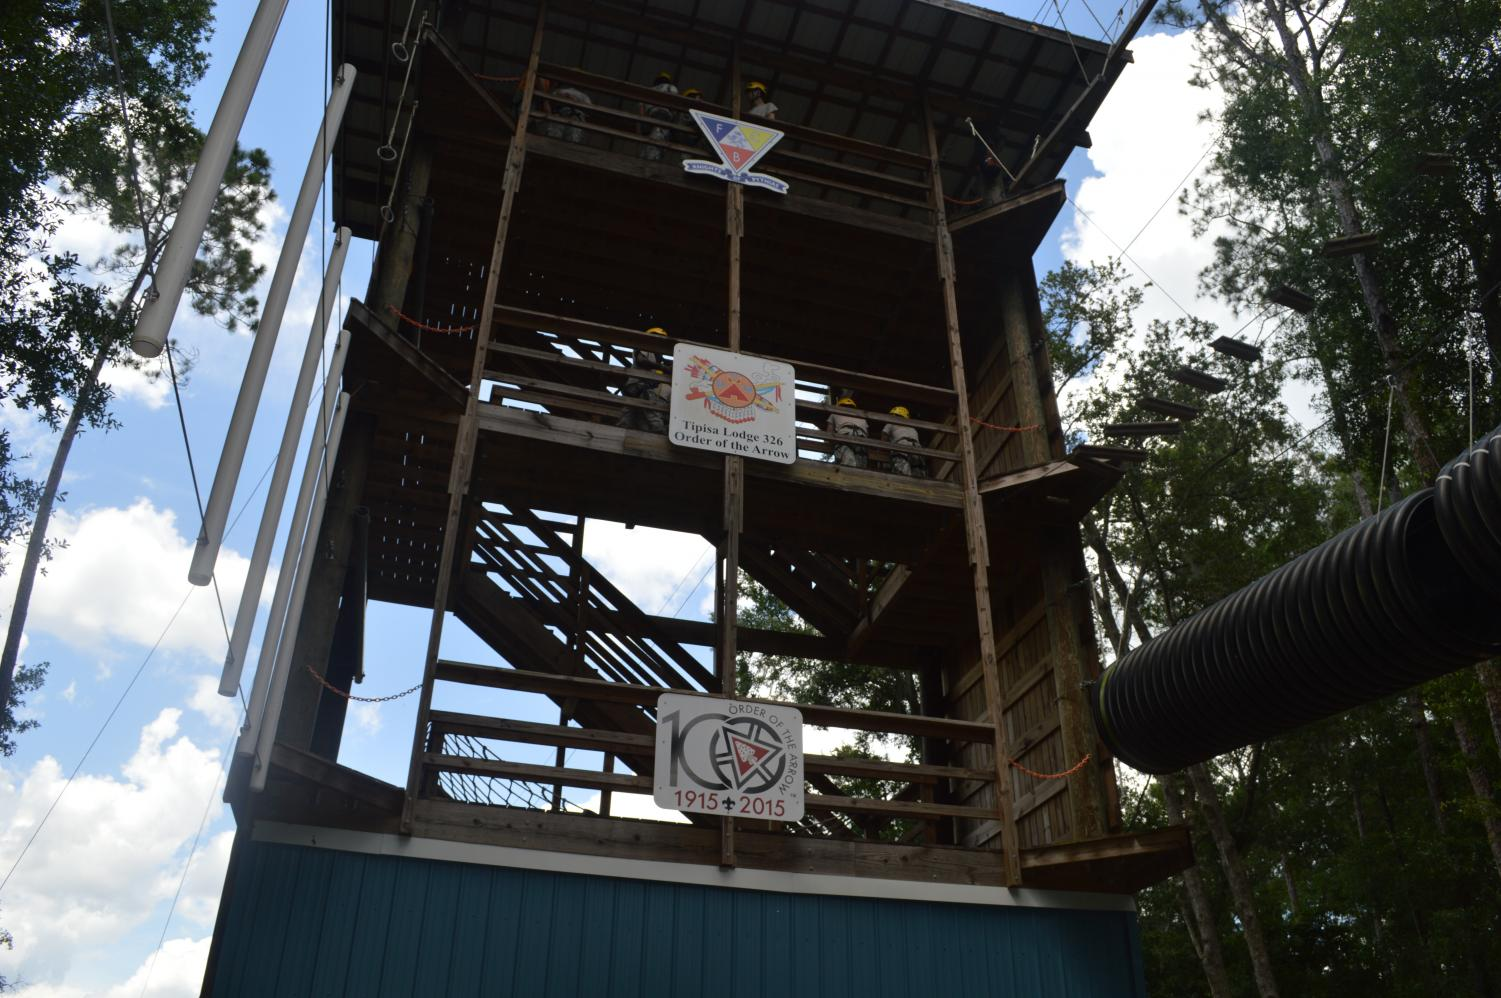 The repelling tower is a wall where cadets repel off a wall or zip line. In order to pass JCLC, cadets have to repel off the wall.